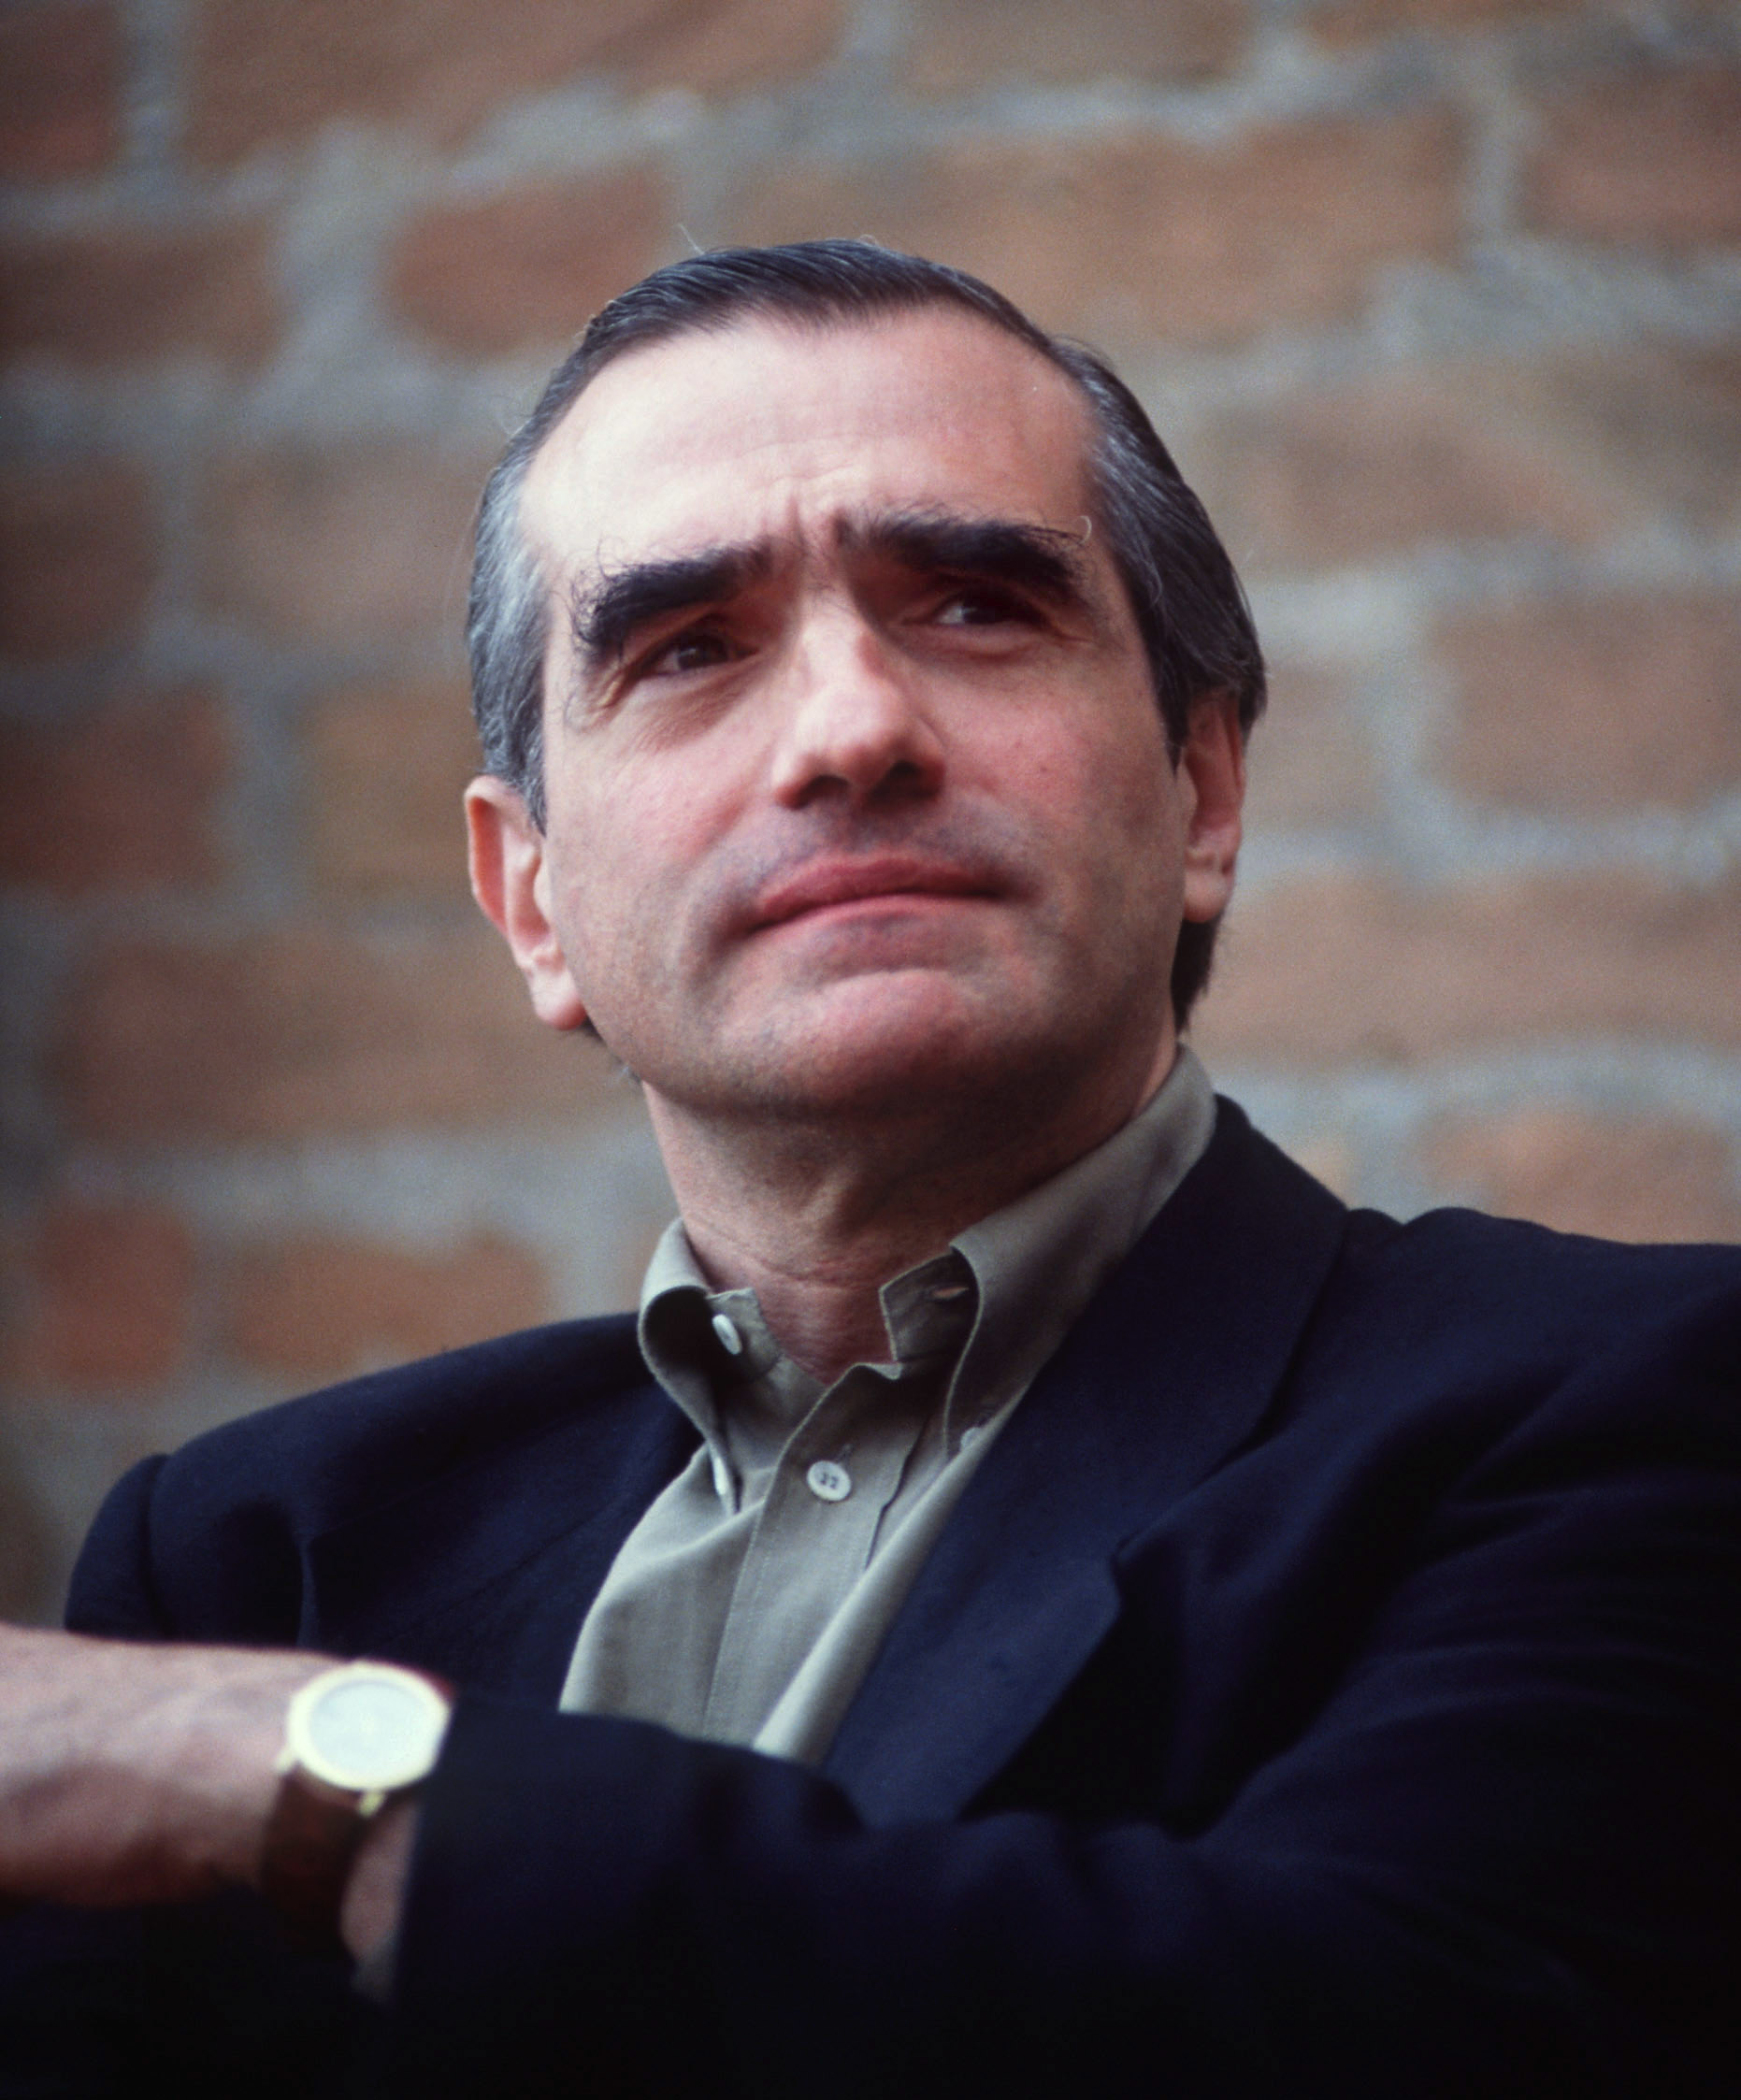 File:Martin Scorsese 03.jpg - Wikimedia Commons Martinscorsese